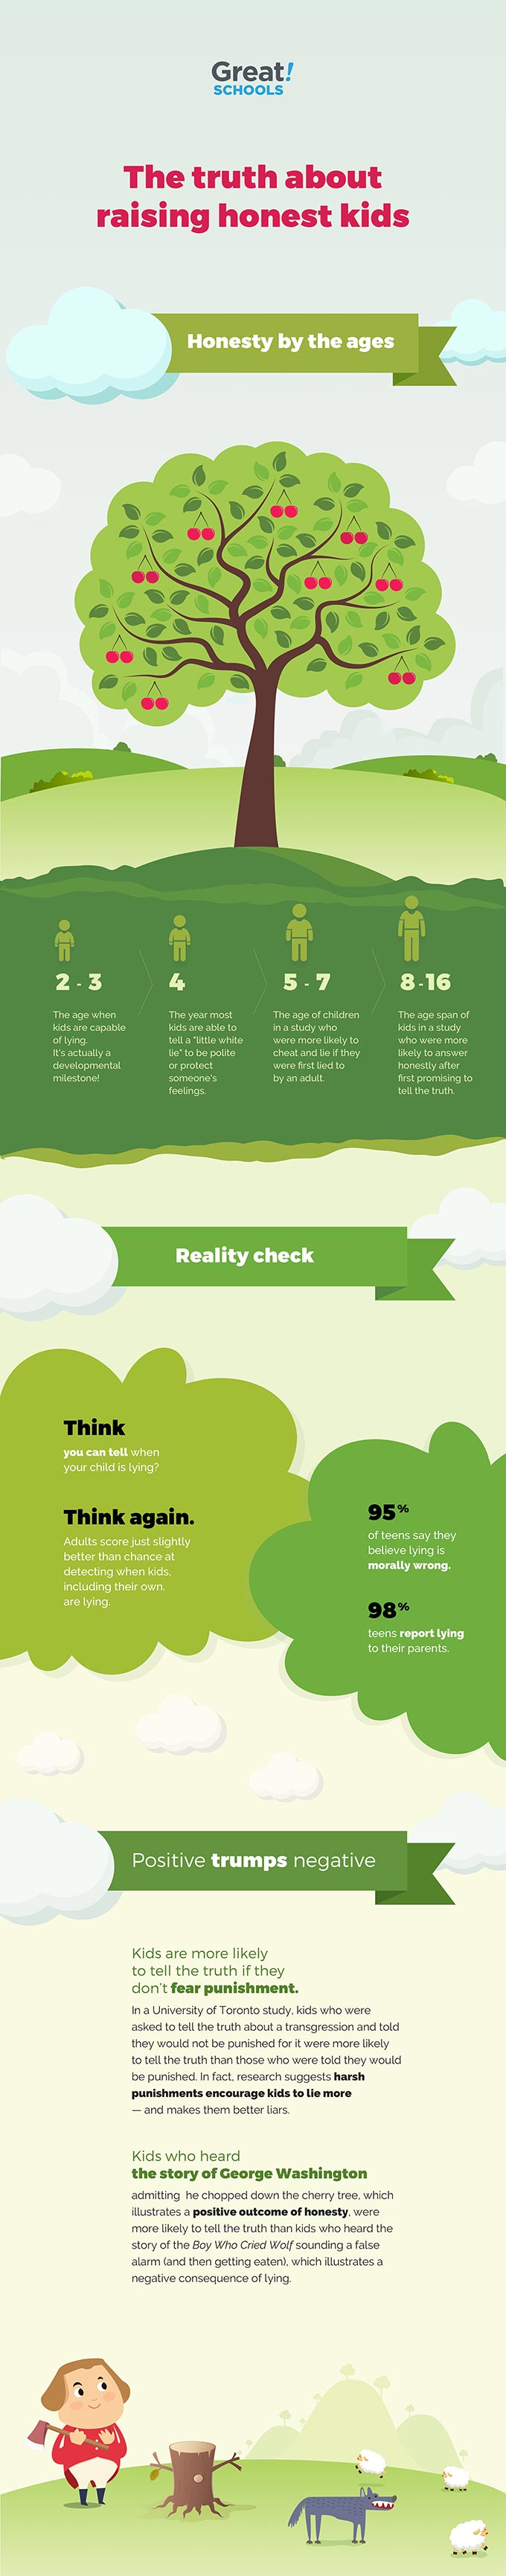 infographic-raising-honest-kids